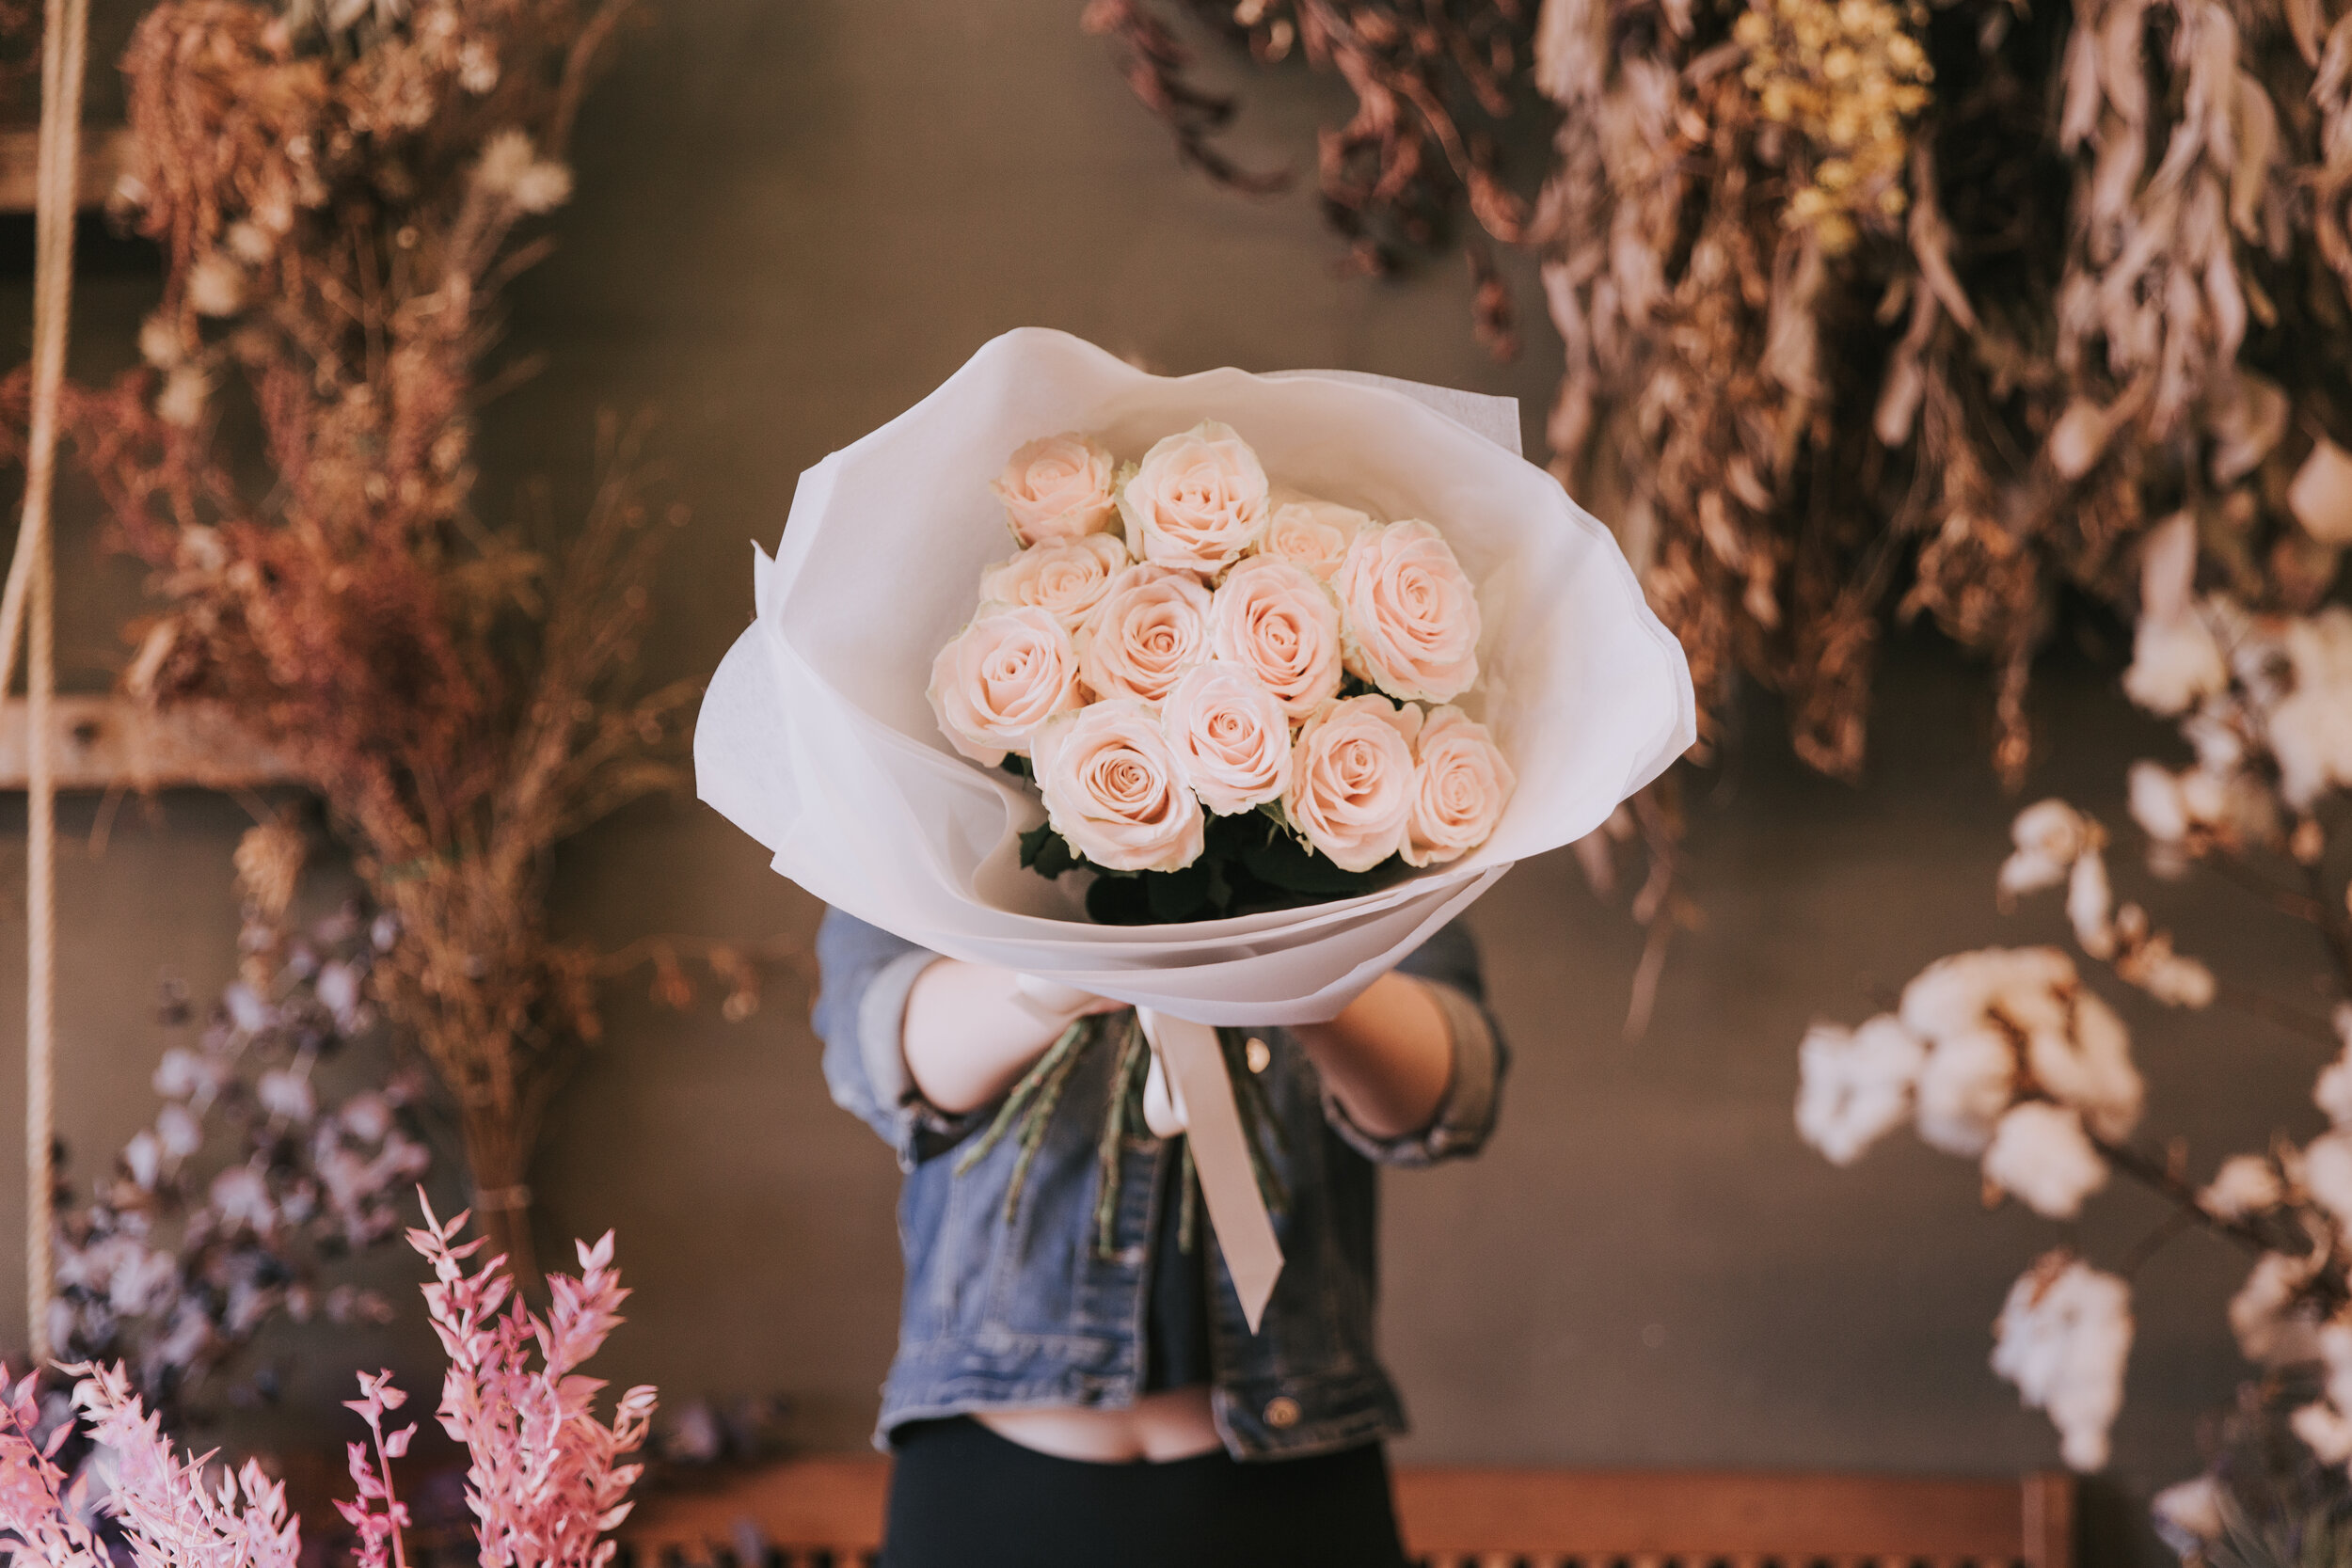 The Meadow Romance - Say it with a dozen roses.From $60AUD